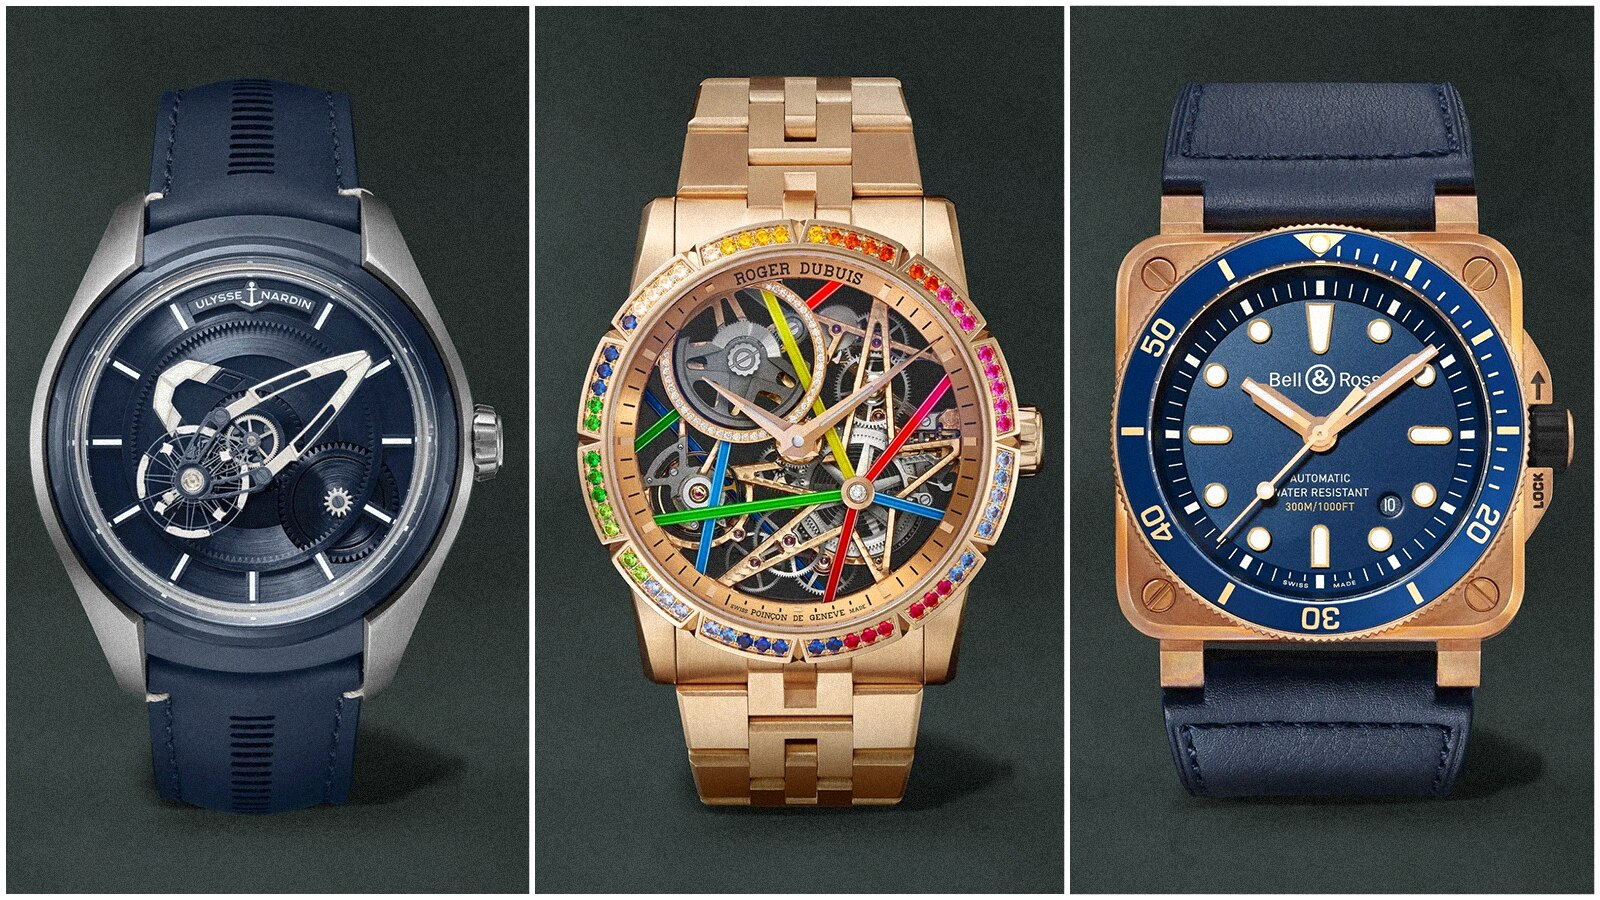 Three Watches To Brighten Up Any Winter's Day